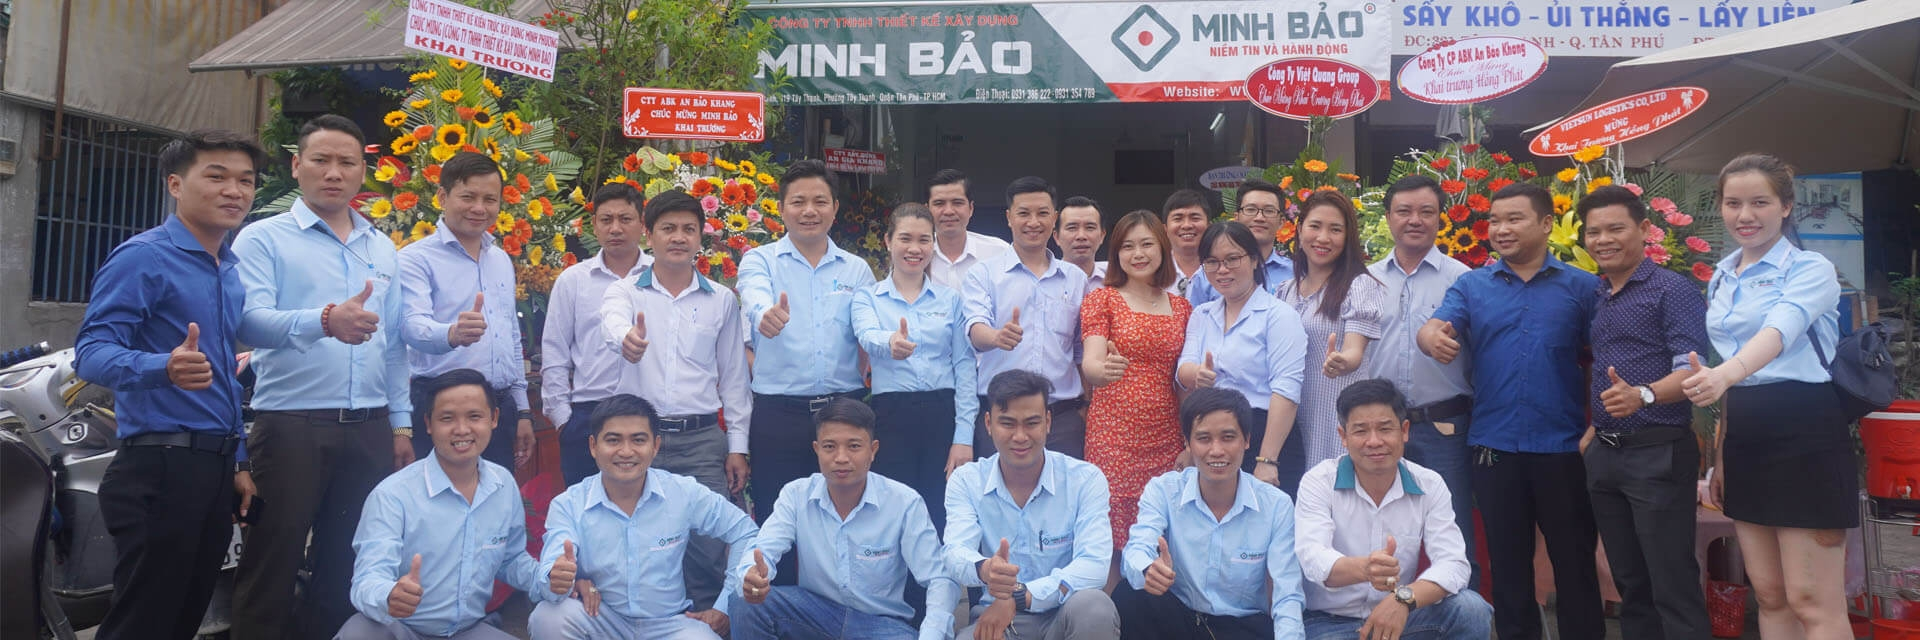 Xây dựng Minh Bảo (@minhbaovn) Cover Image